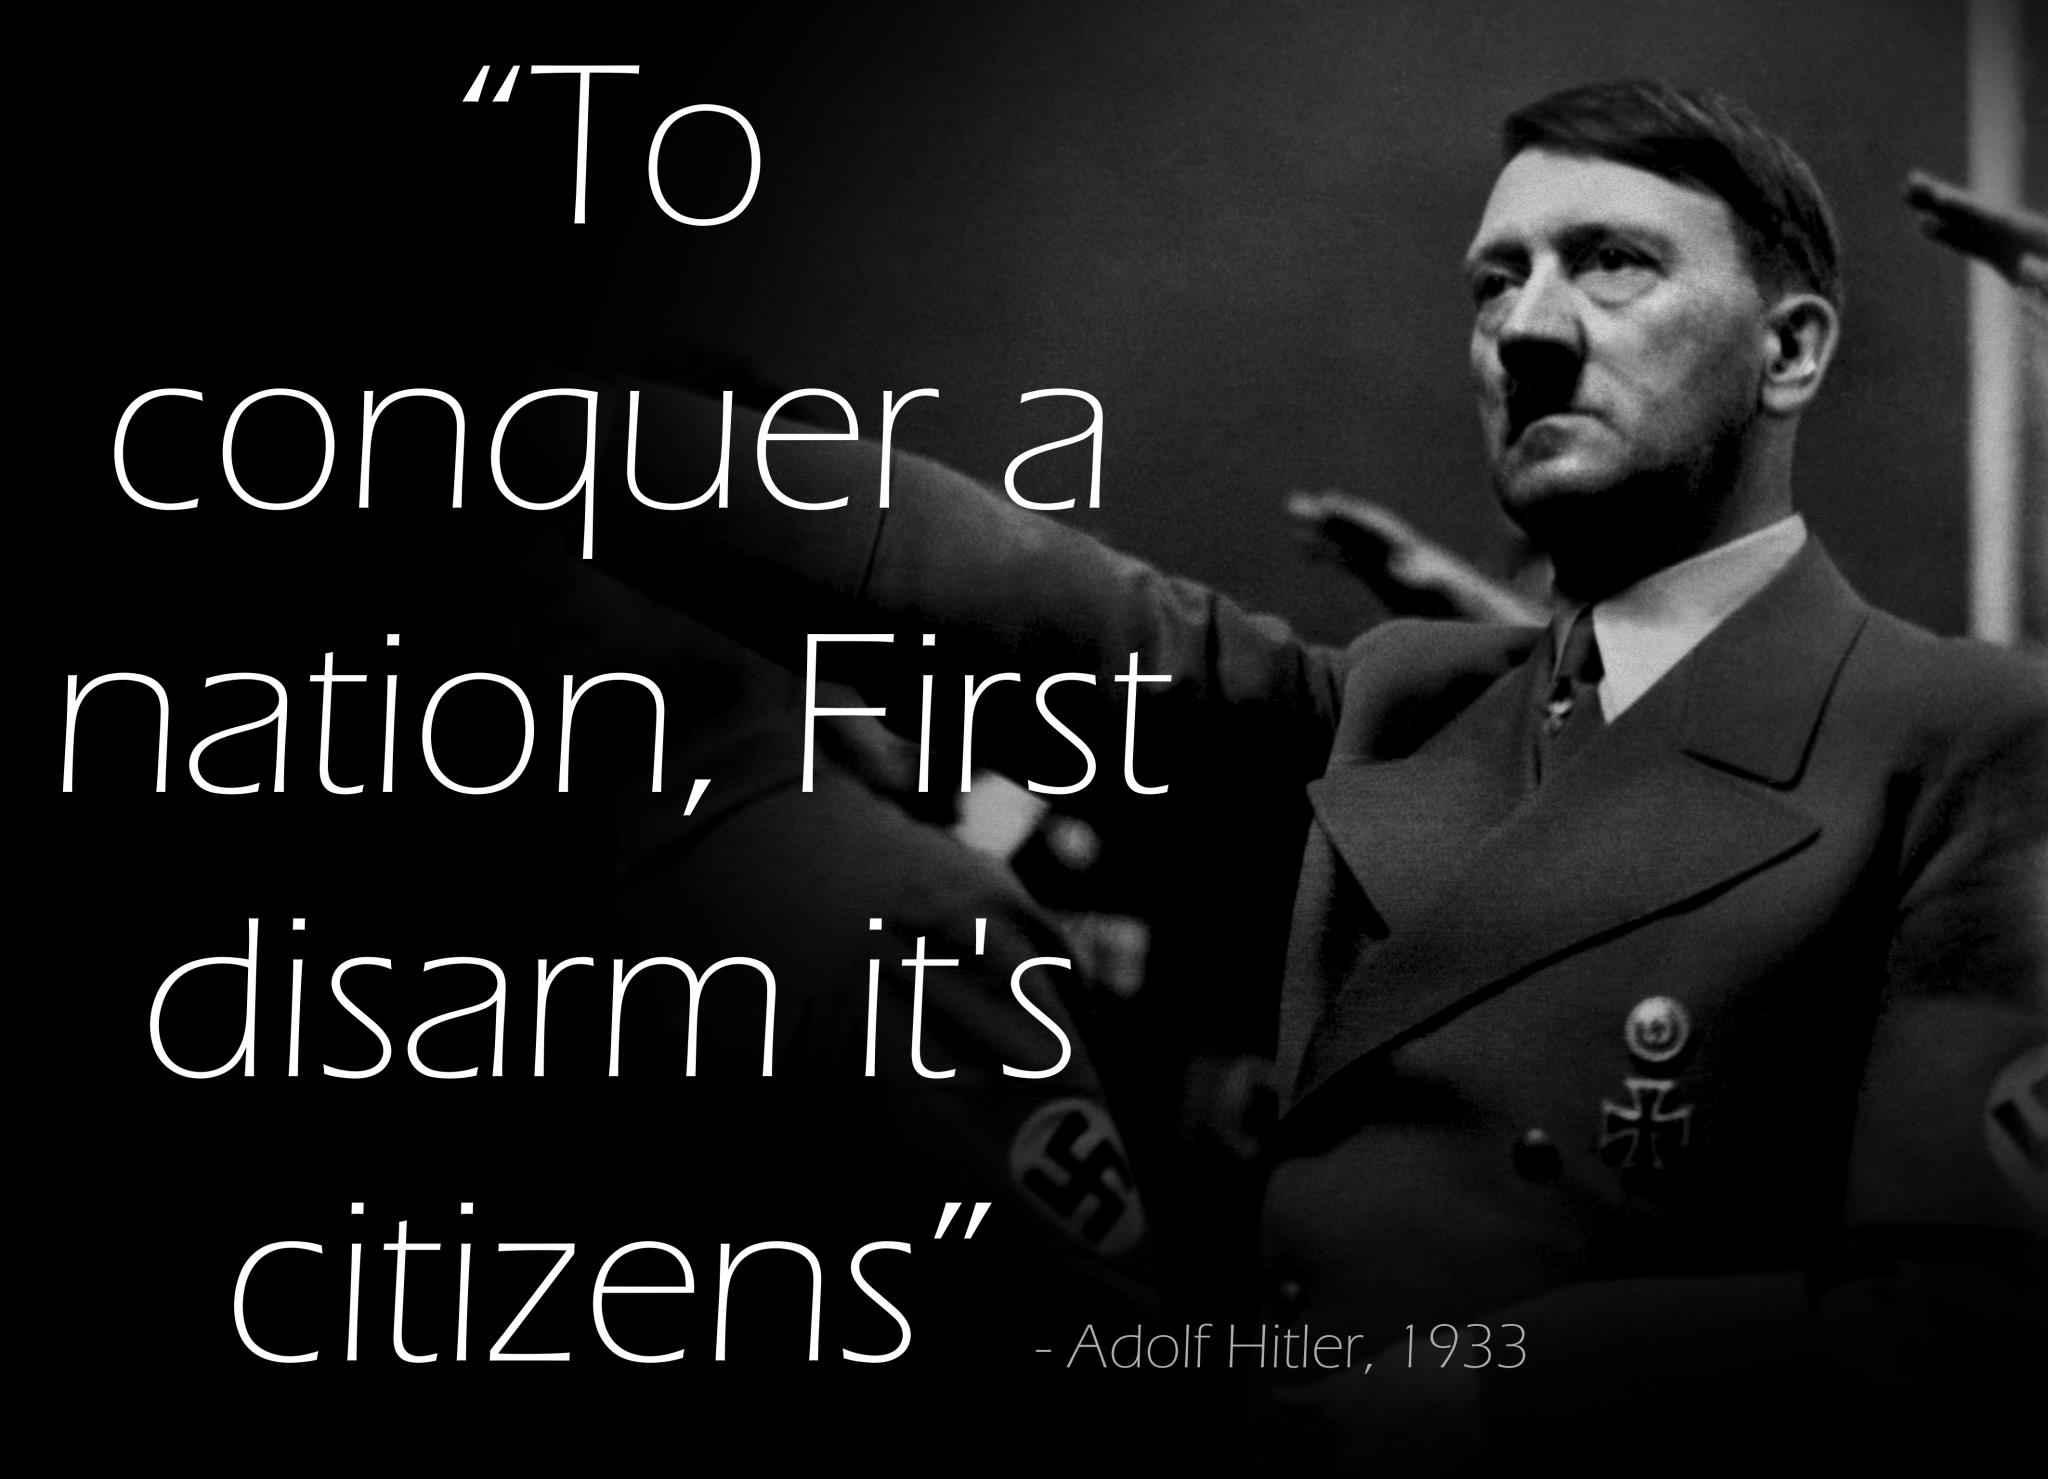 a biography and life work of adolf hitler a german political leader Biography, leadership lessons and quotes from adolf hitler, known as the leader of nazi germany who started world war ii and for his role in the holocaust.